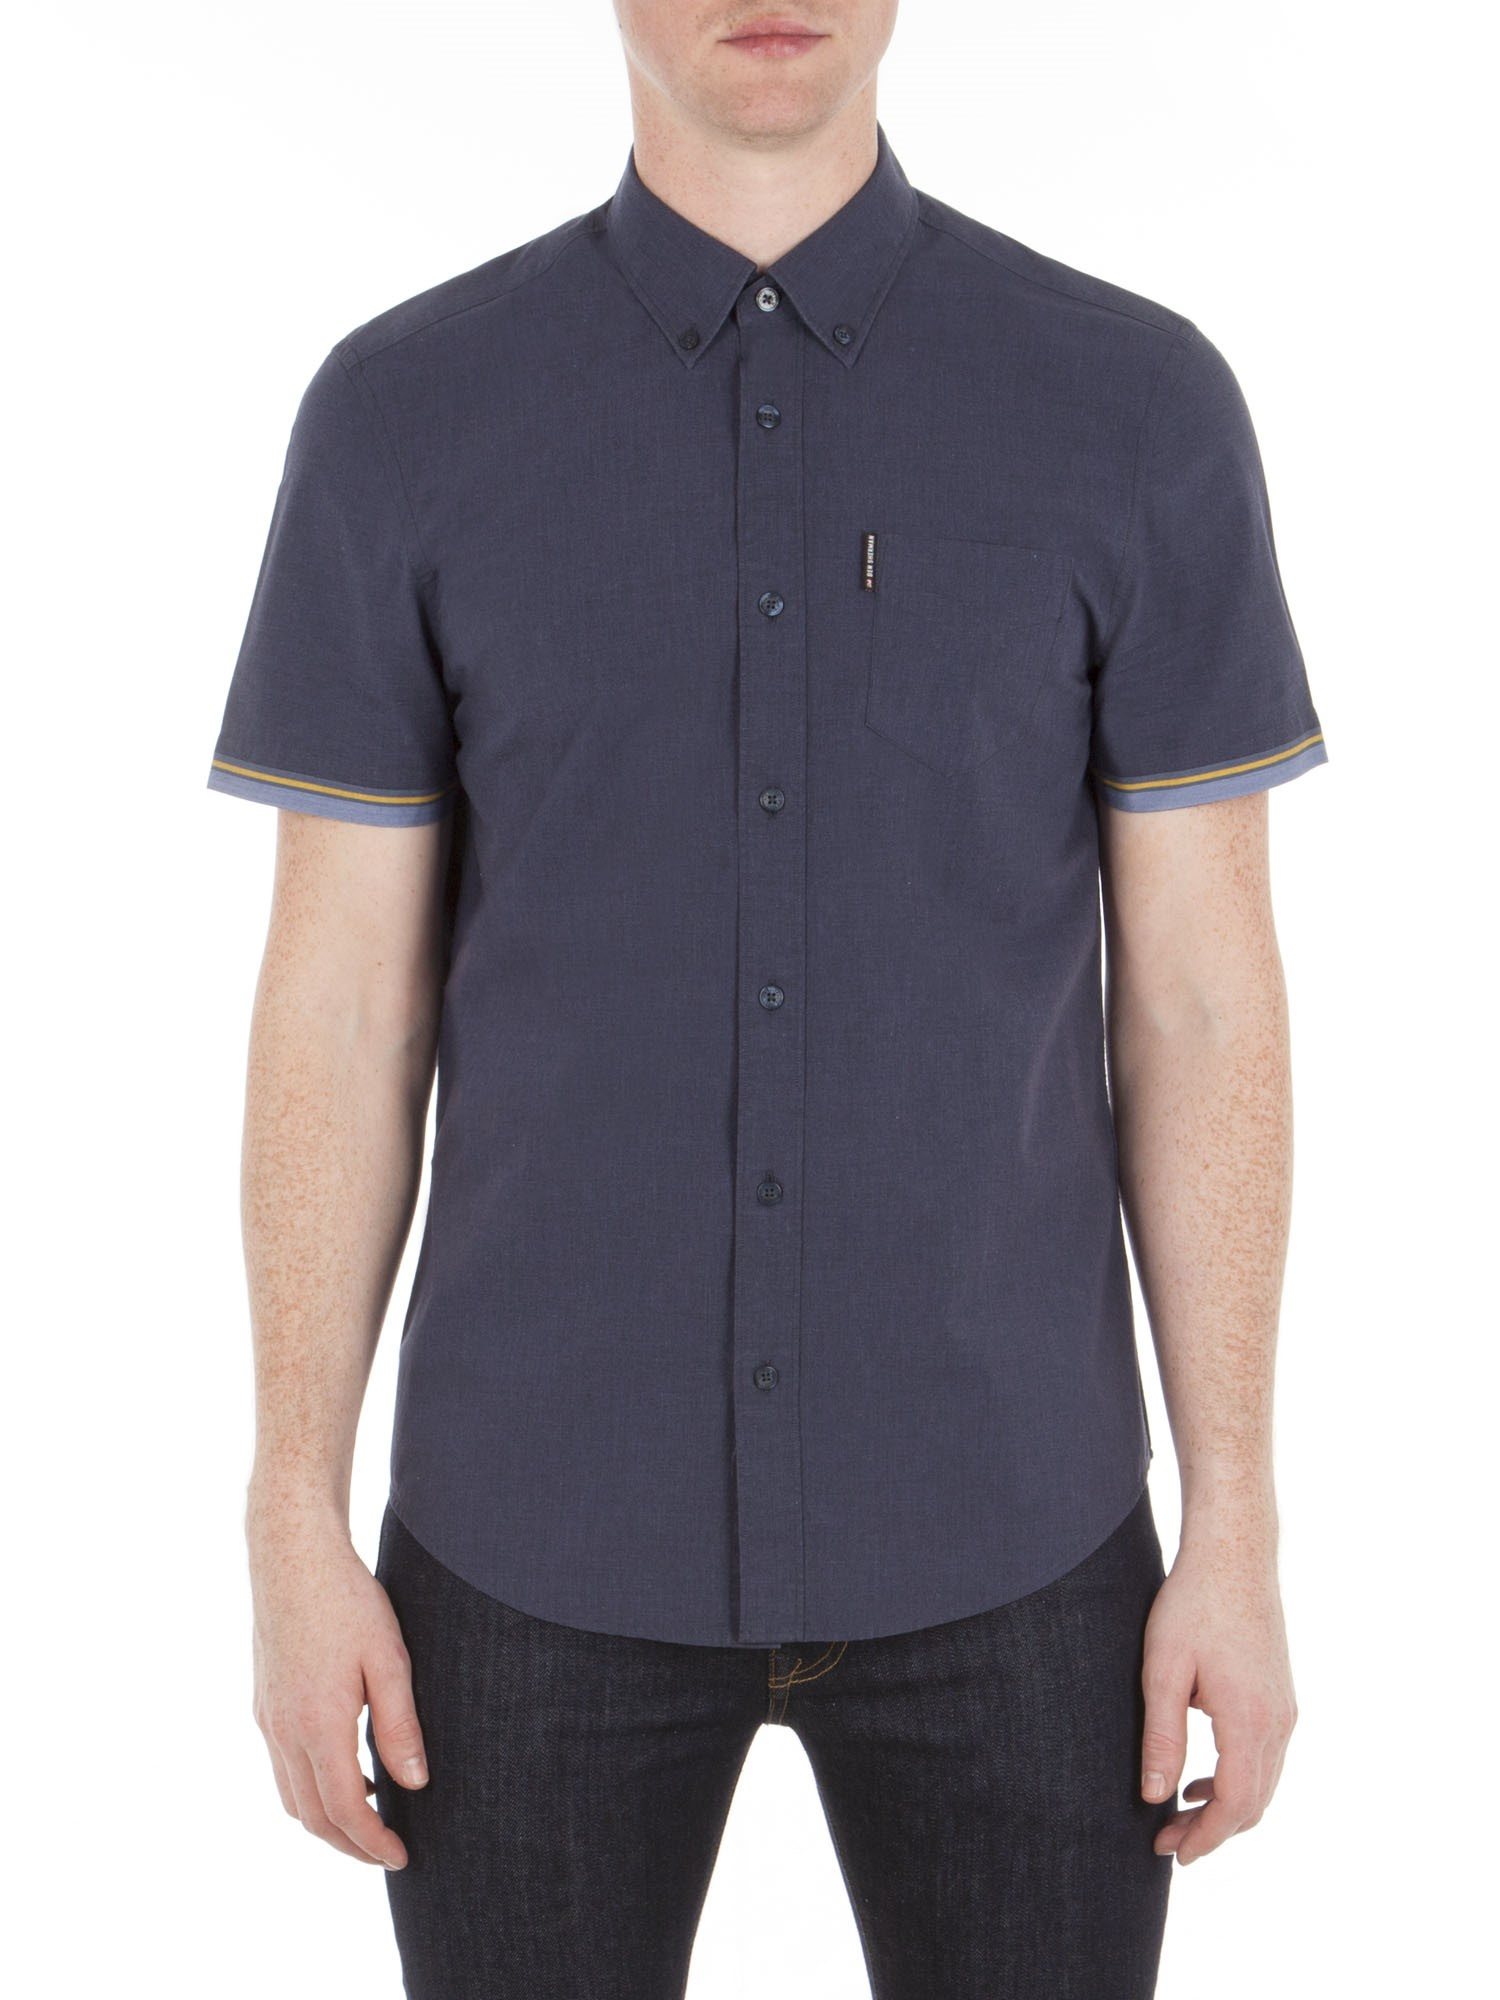 Ben Sherman True Indigo Short Sleeve Marl Tipped Shirt Regular Fit (Mod Fit)